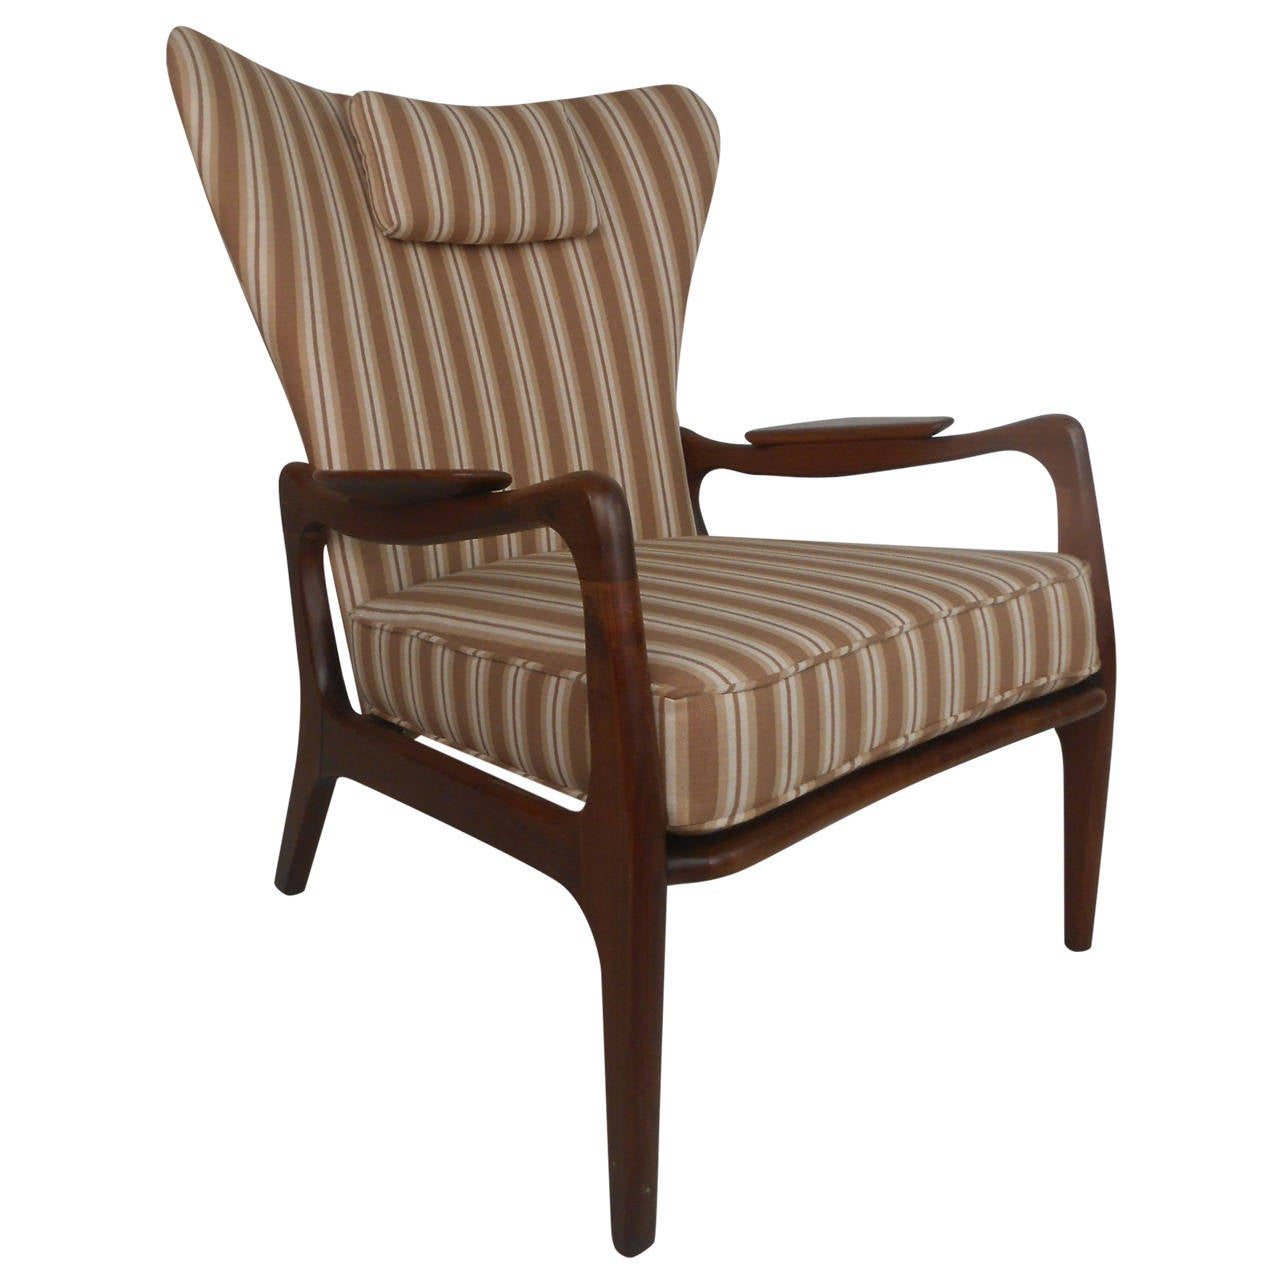 adrian pearsall lounge chair 2 person camping wingback for sale at 1stdibs